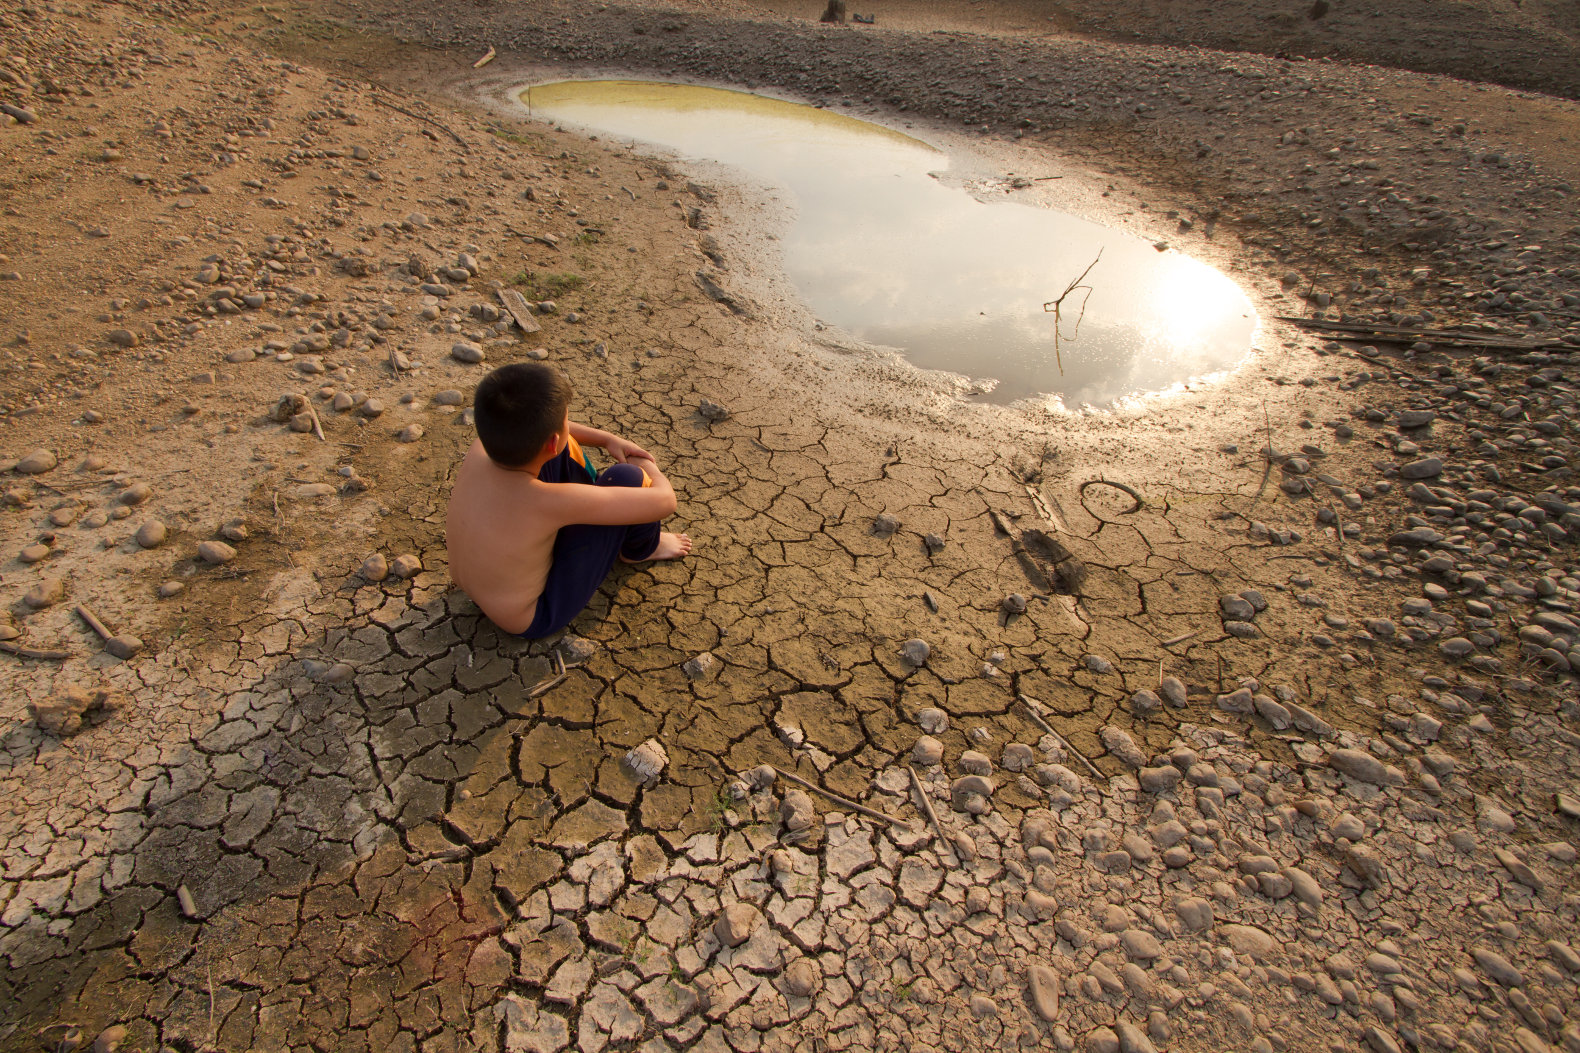 One-thirds of the global population (2 billion people) live under conditions of severe water scarcity at least 1 month of the year.Half a billion people in the world face severe water scarcity all year round.Half of the world's largest cities experience water scarcity.